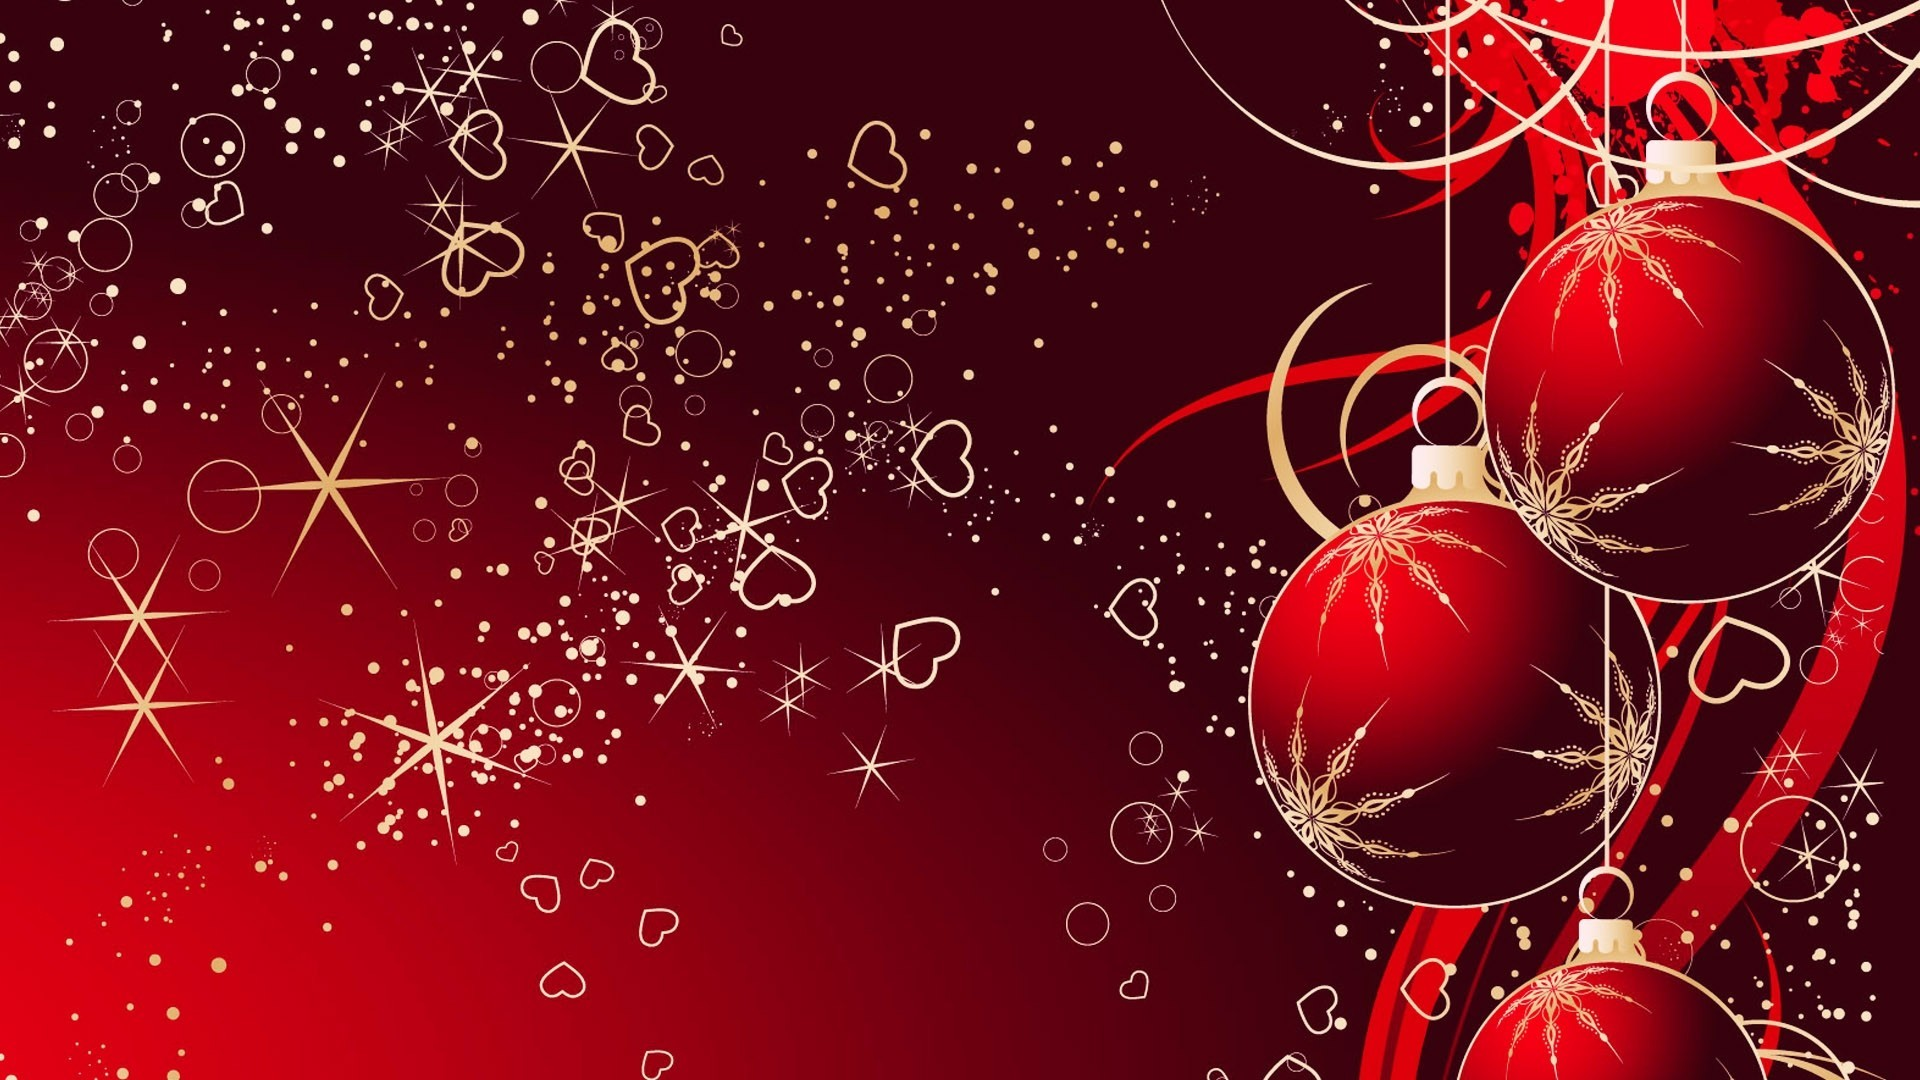 Res: 1920x1080, Free Download Merry Christmas Wallpapers s HD Pics